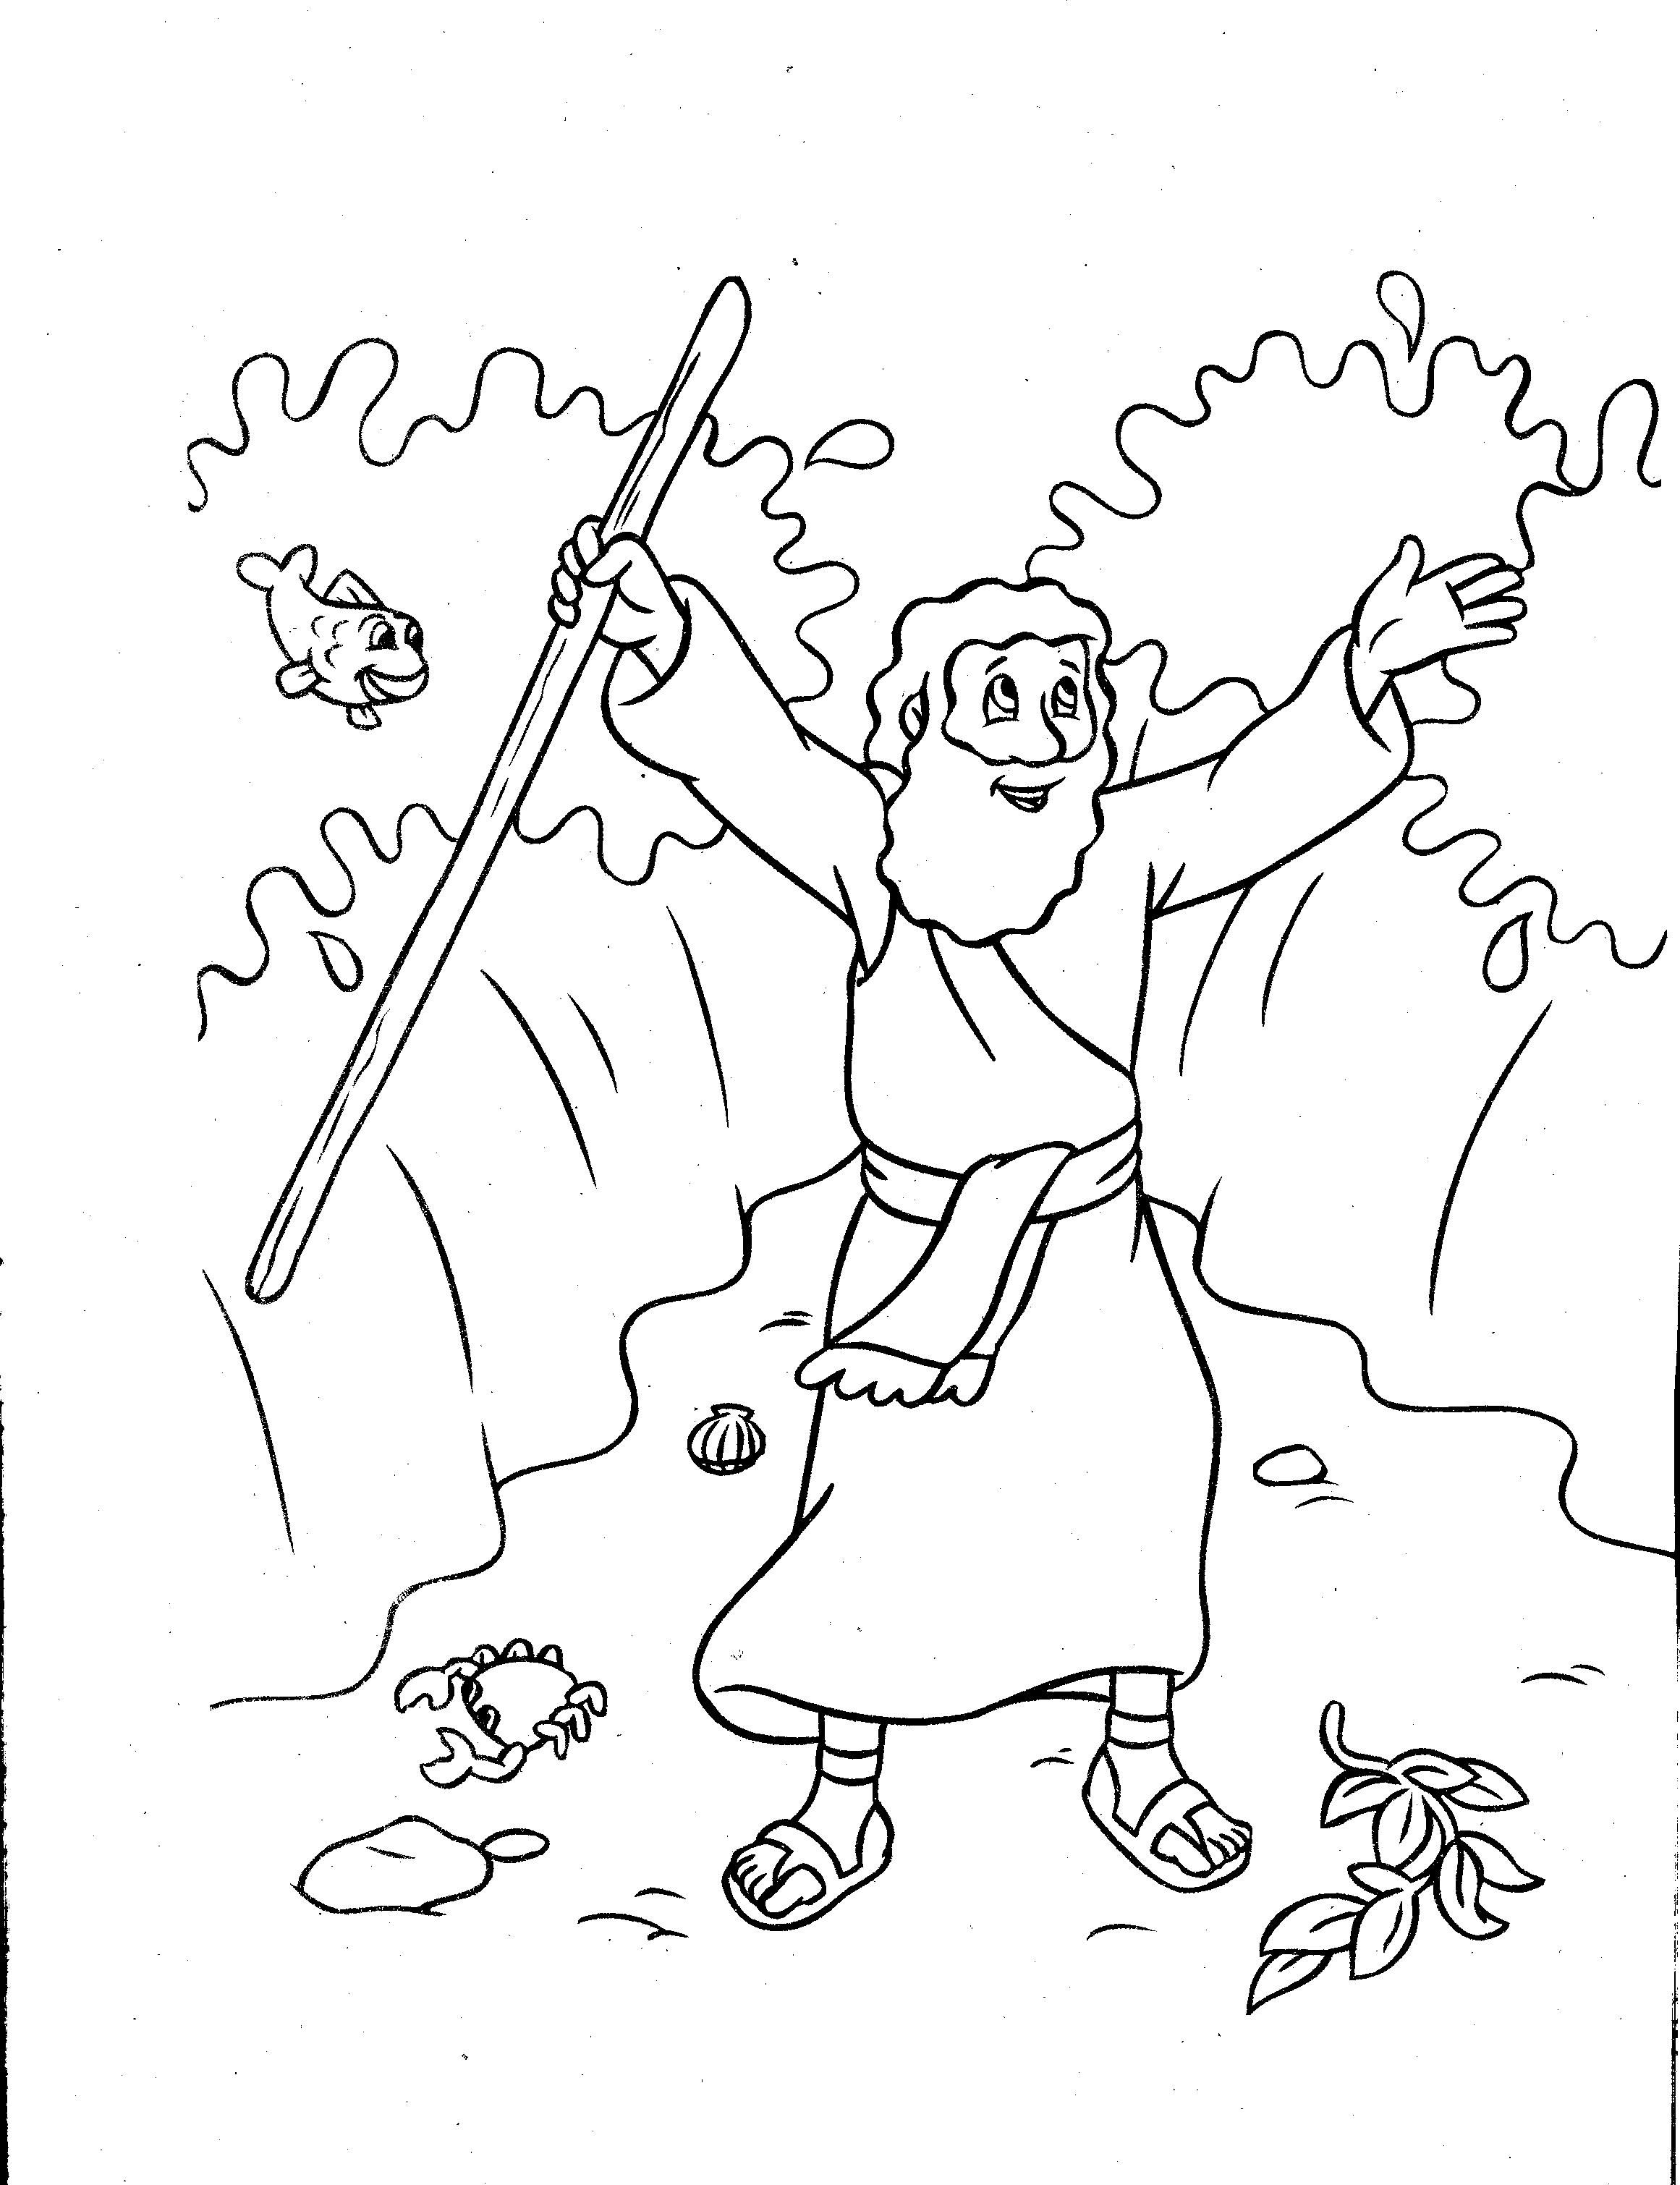 moses red sea coloring page moses bible story coloring page bible coloring pages coloring red page sea moses